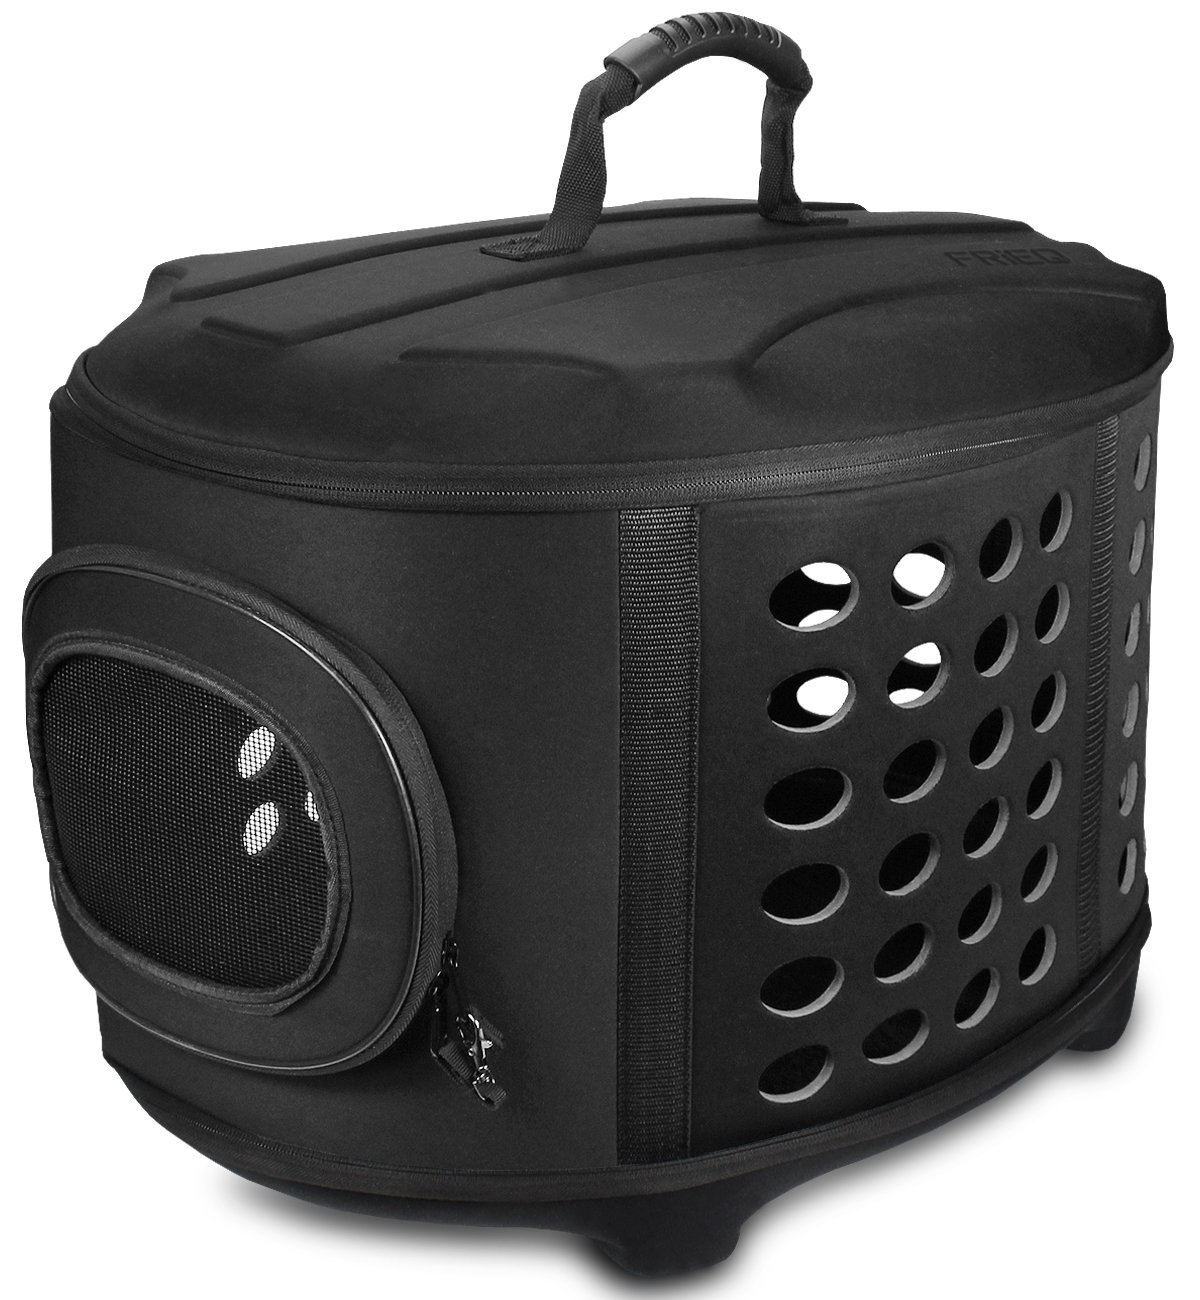 FRiEQ 23-inch Large Hard Cover Pet Carrier - Pet Travel Kennel Cats, Small Dogs & Rabbits